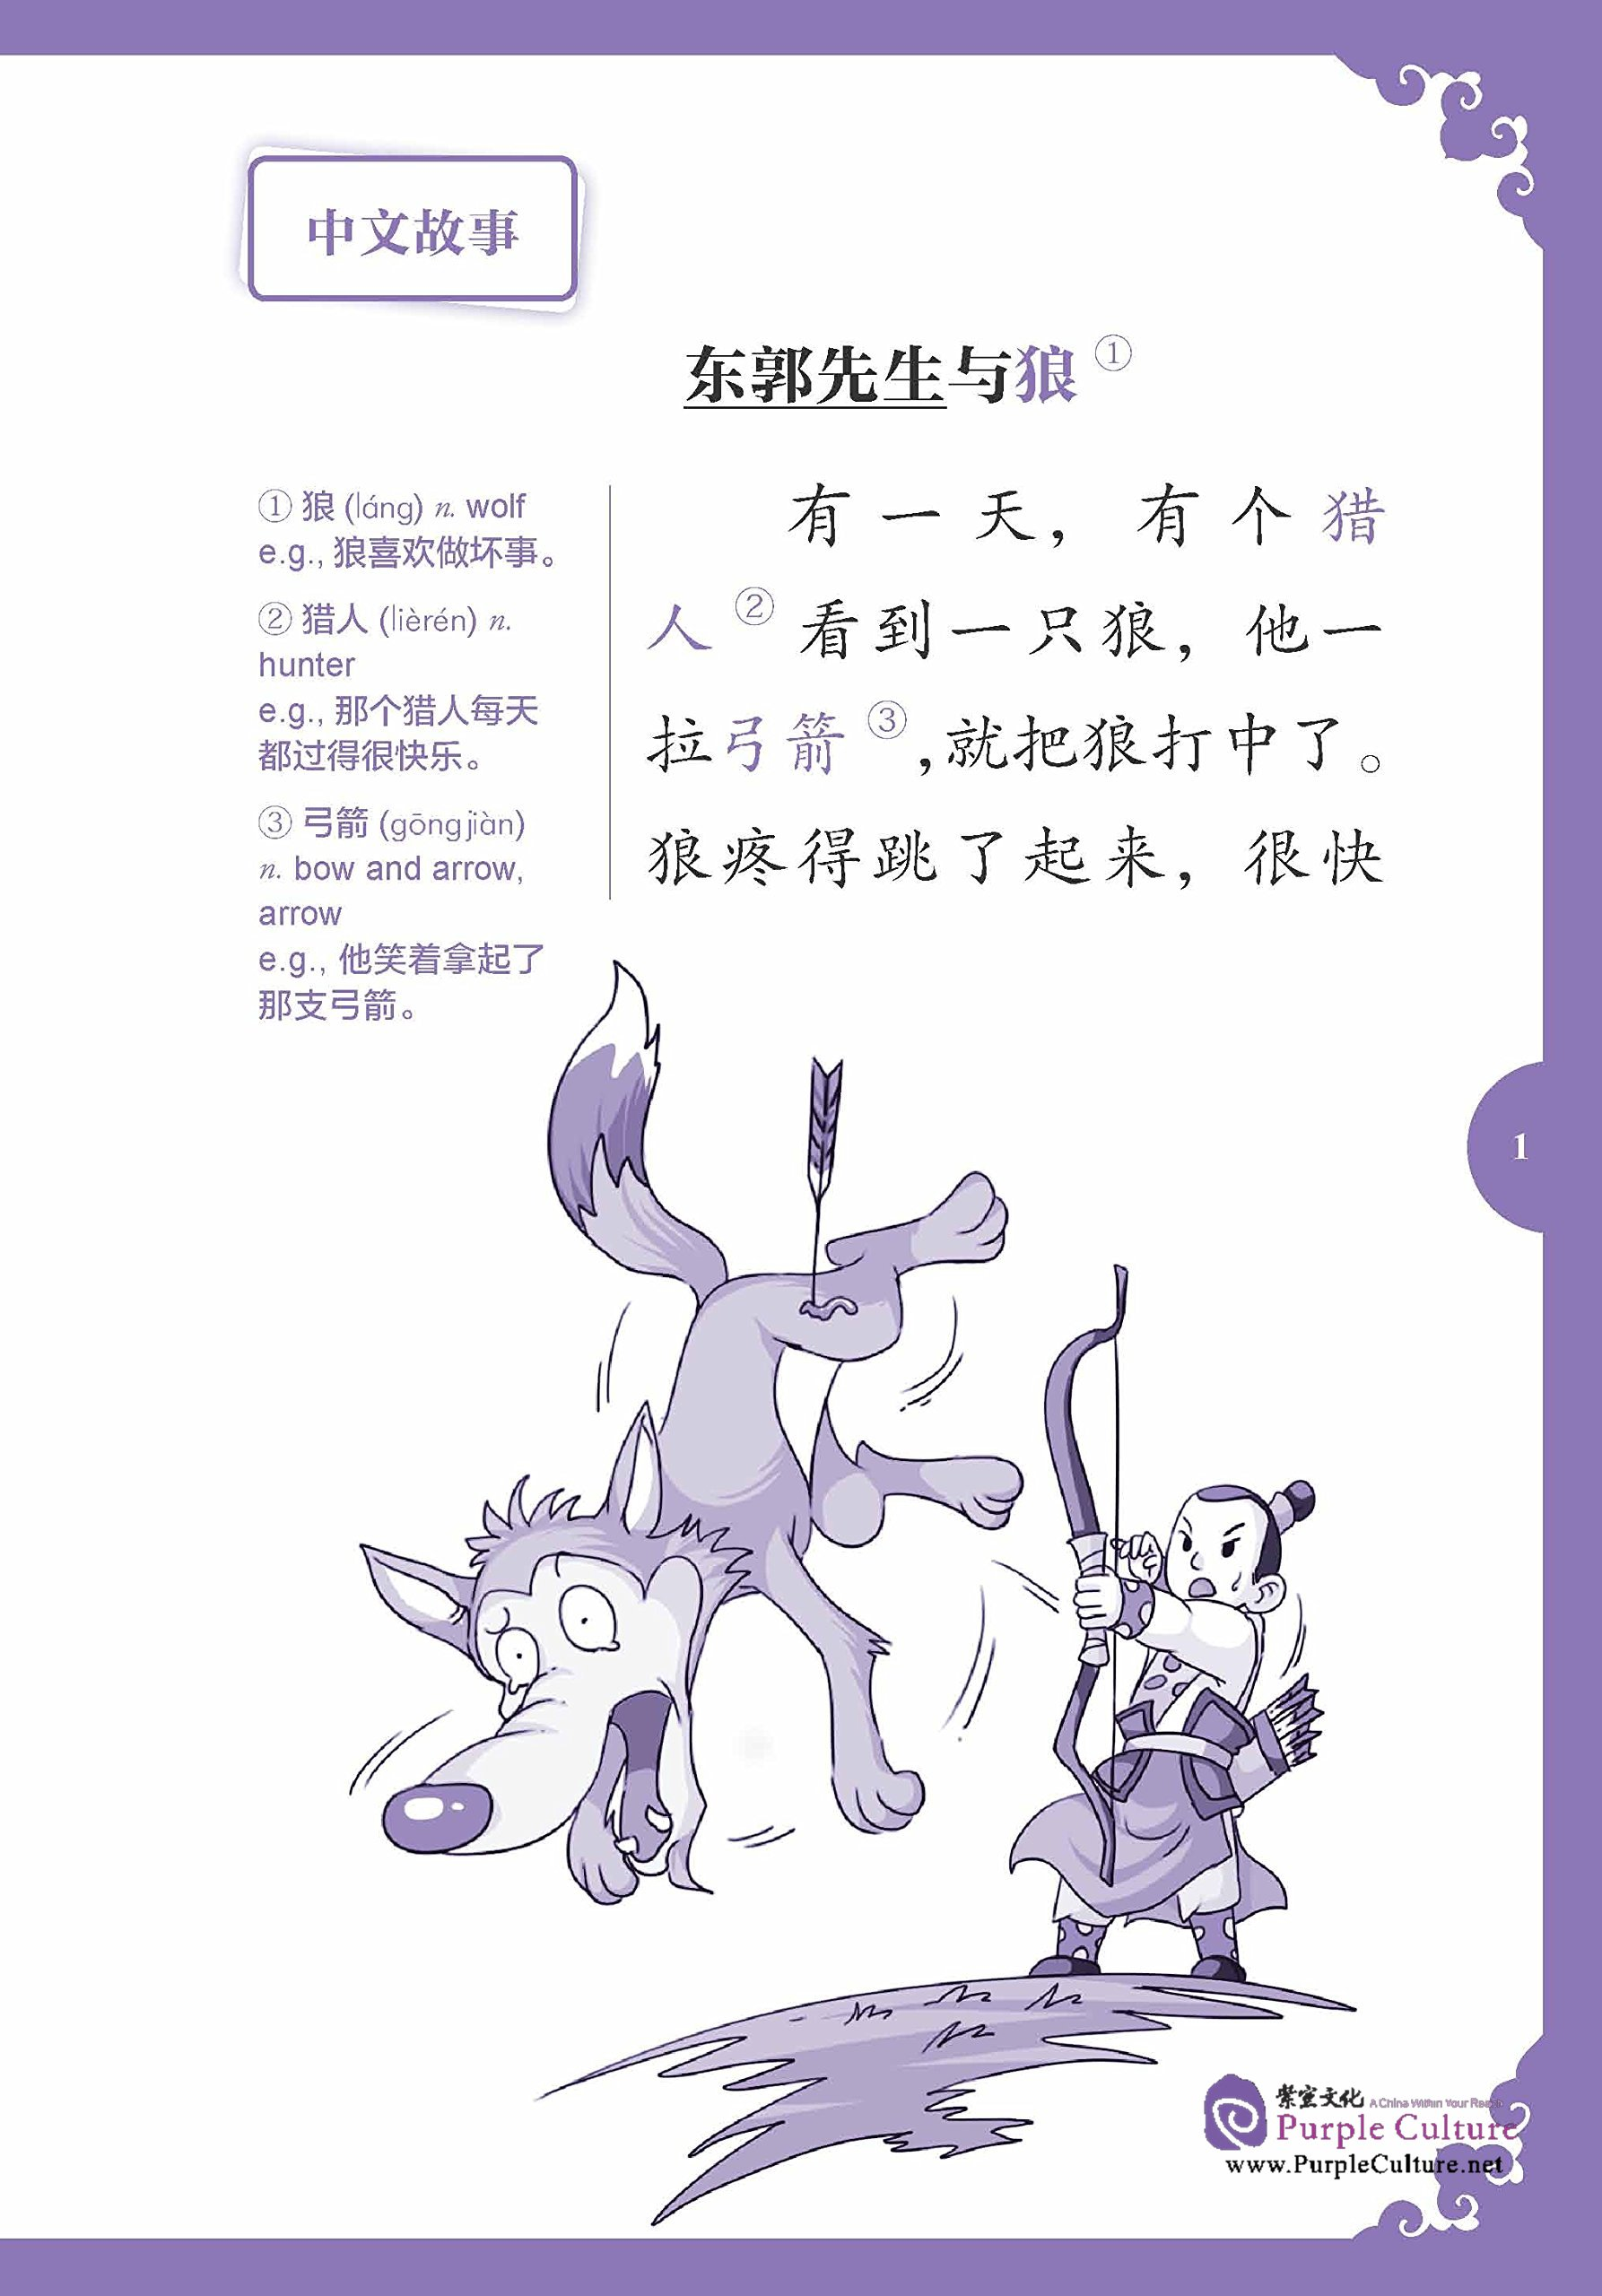 Sample pages of Rainbow Bridge Graded Chinese Reader: Starter: 150 Vocabulary words: Mr. Dongguo and the Wolf (ISBN:7513810389, 9787513810388)